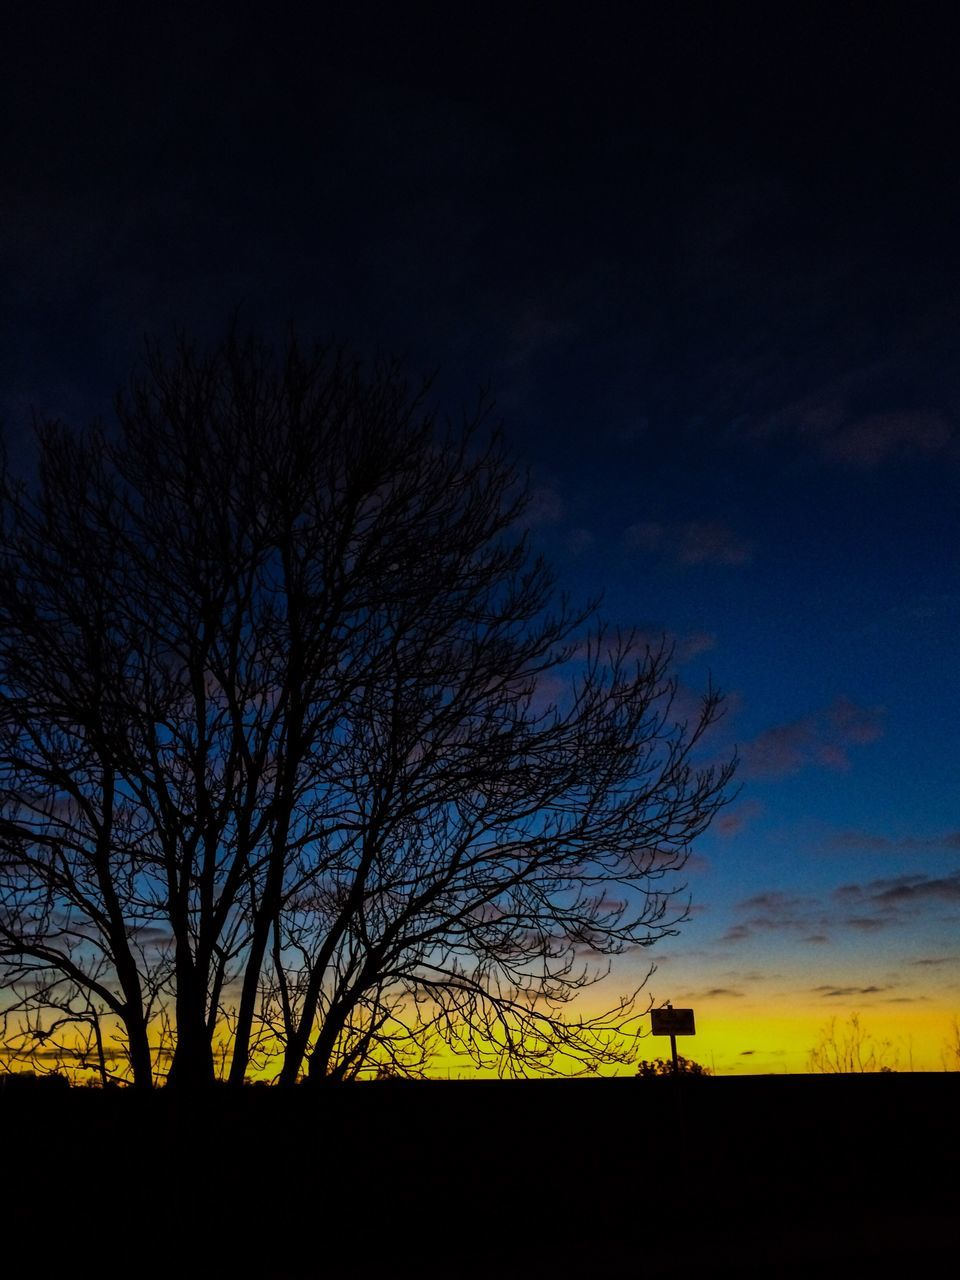 bare tree, silhouette, tree, scenics, tranquil scene, sky, tranquility, nature, beauty in nature, outdoors, no people, sunset, landscape, blue, field, yellow, night, branch